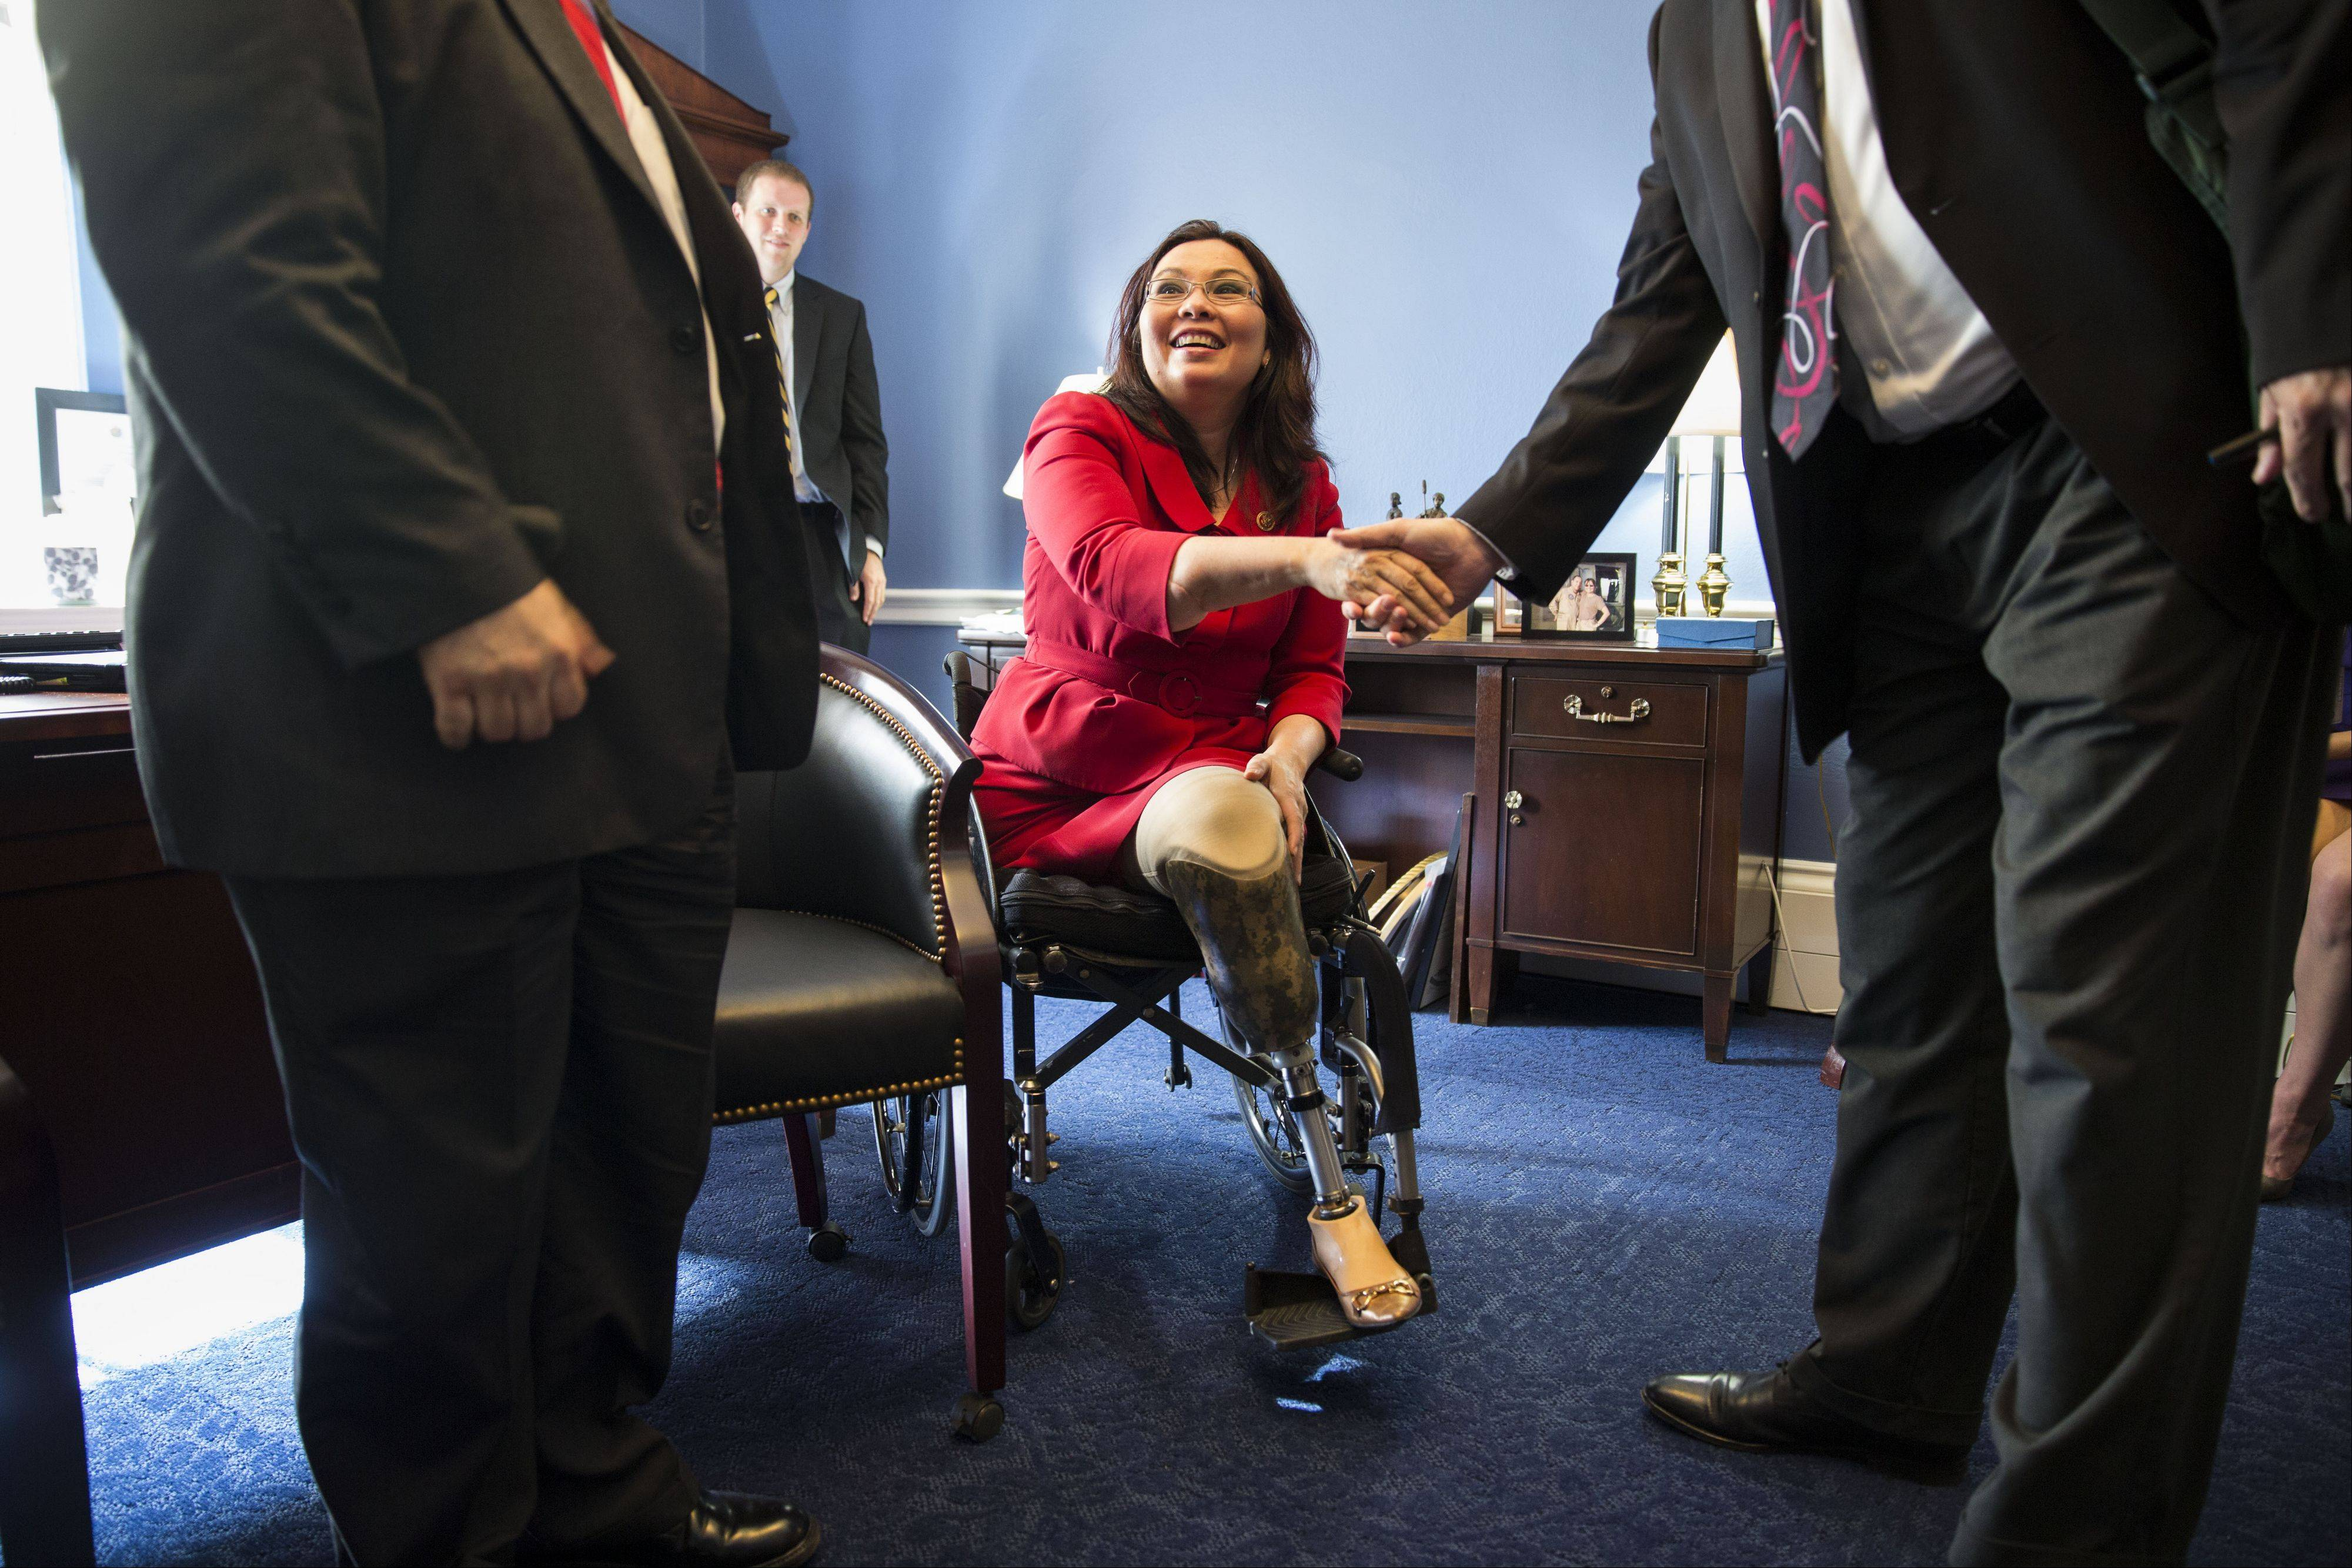 U.S. Rep. Tammy Duckworth meets with members of the Illinois League of Financial Institutions in Washington, D.C.